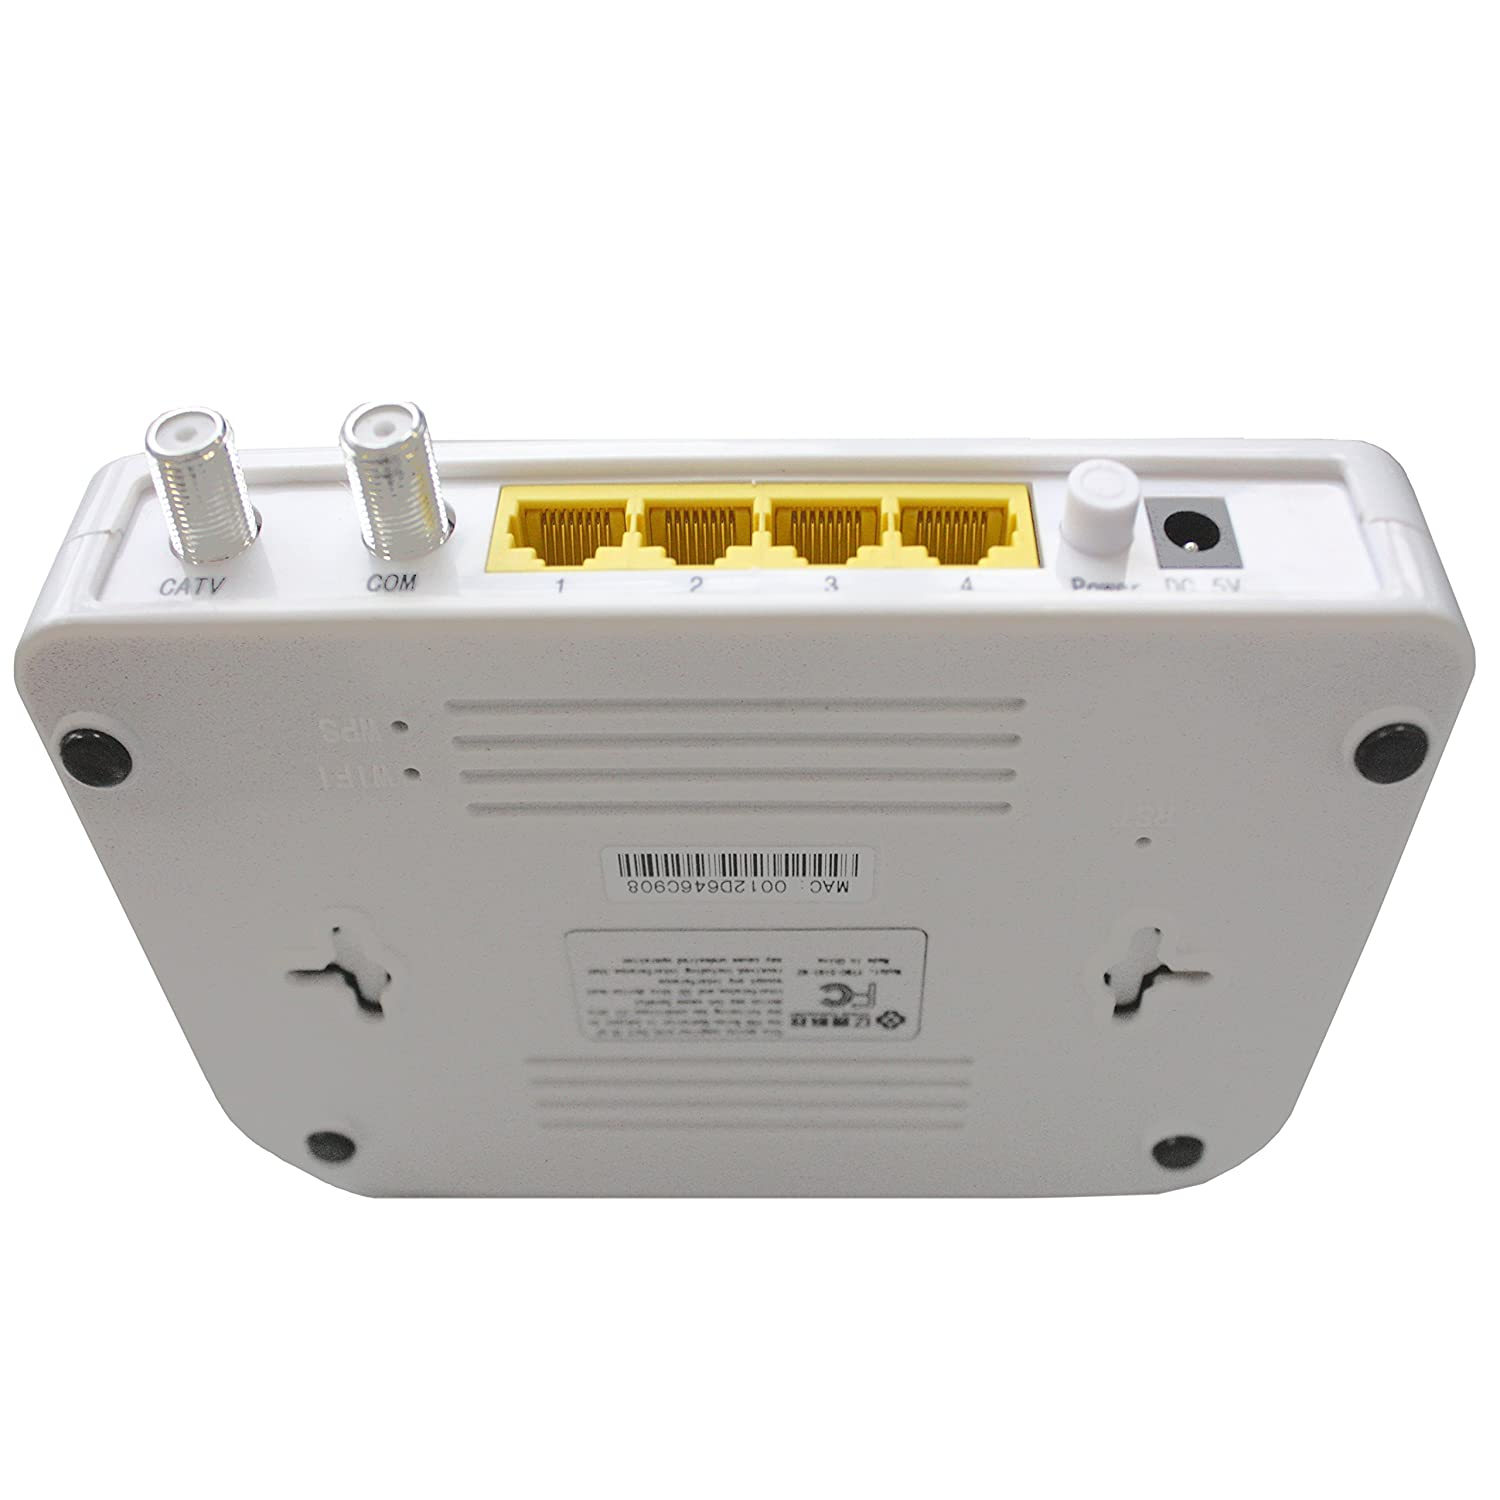 Tivo Moca Speed Wiring Diagram Yitong Technology Ethernet To Coax Adapter Port Fast Switch Electronics 1500x1500